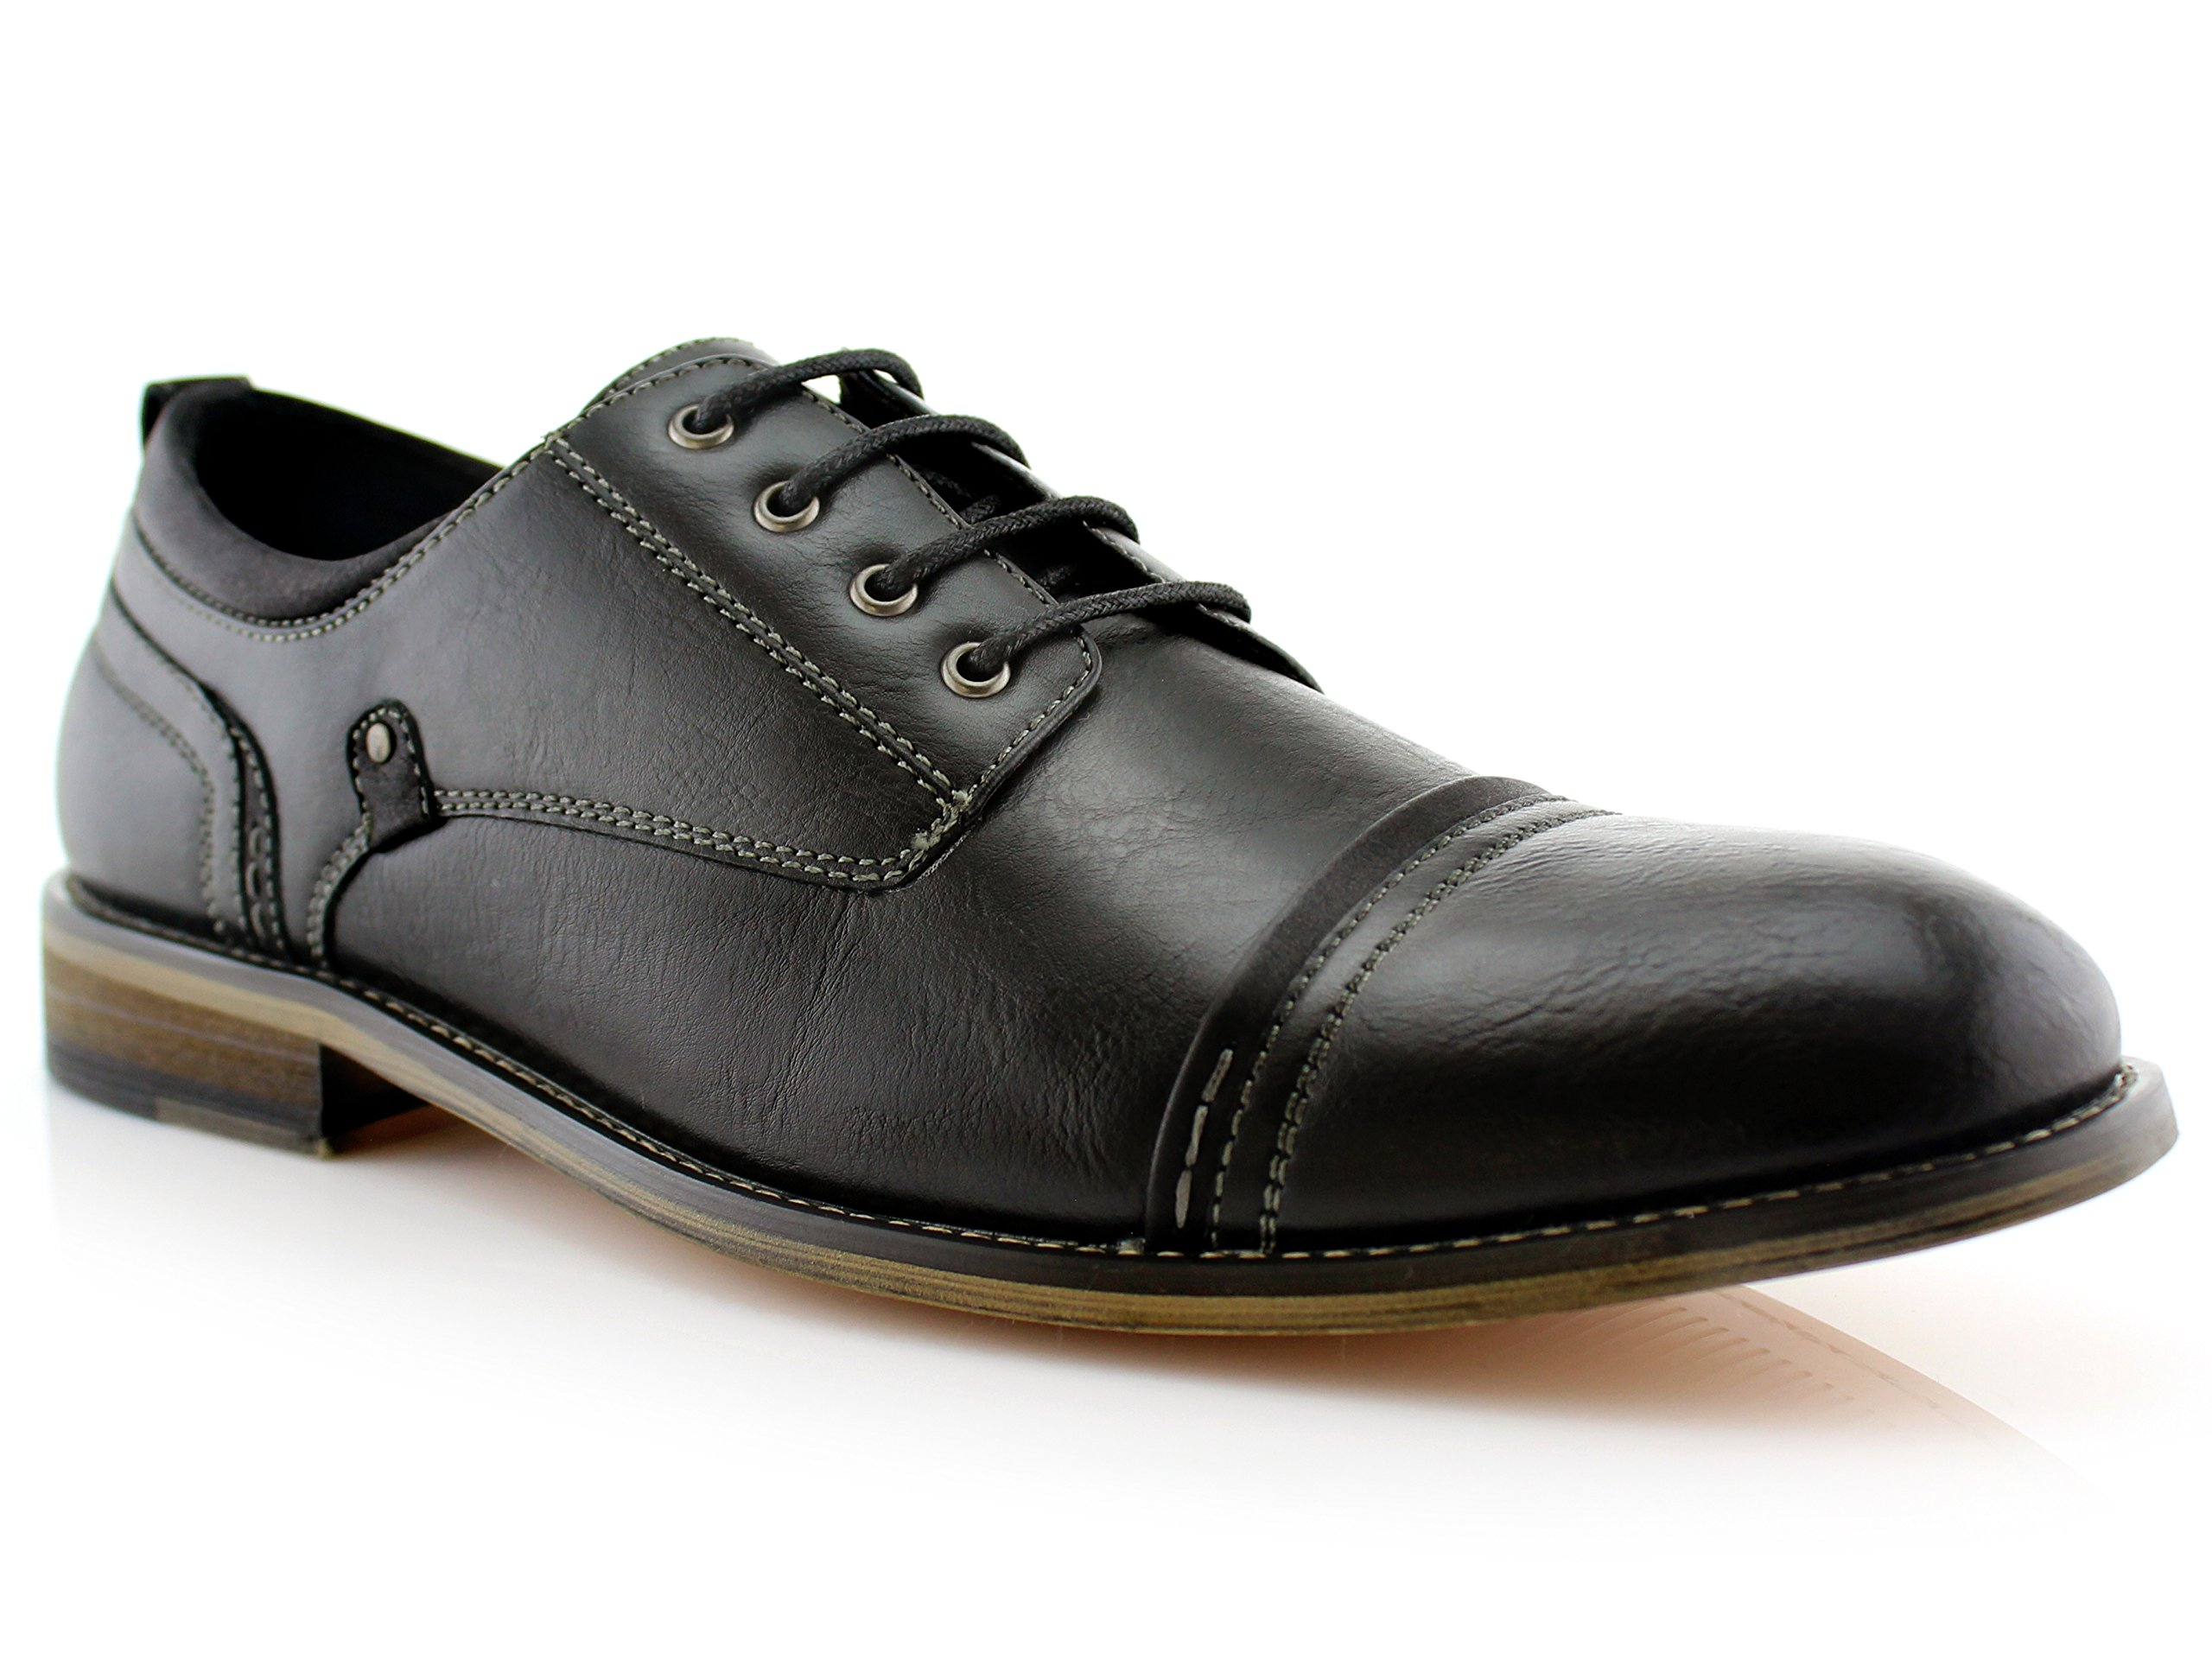 Ferro Aldo Shane MFA19606L Mens Casual Cap Toe Oxford Dressing Shoes – Black, Size 7